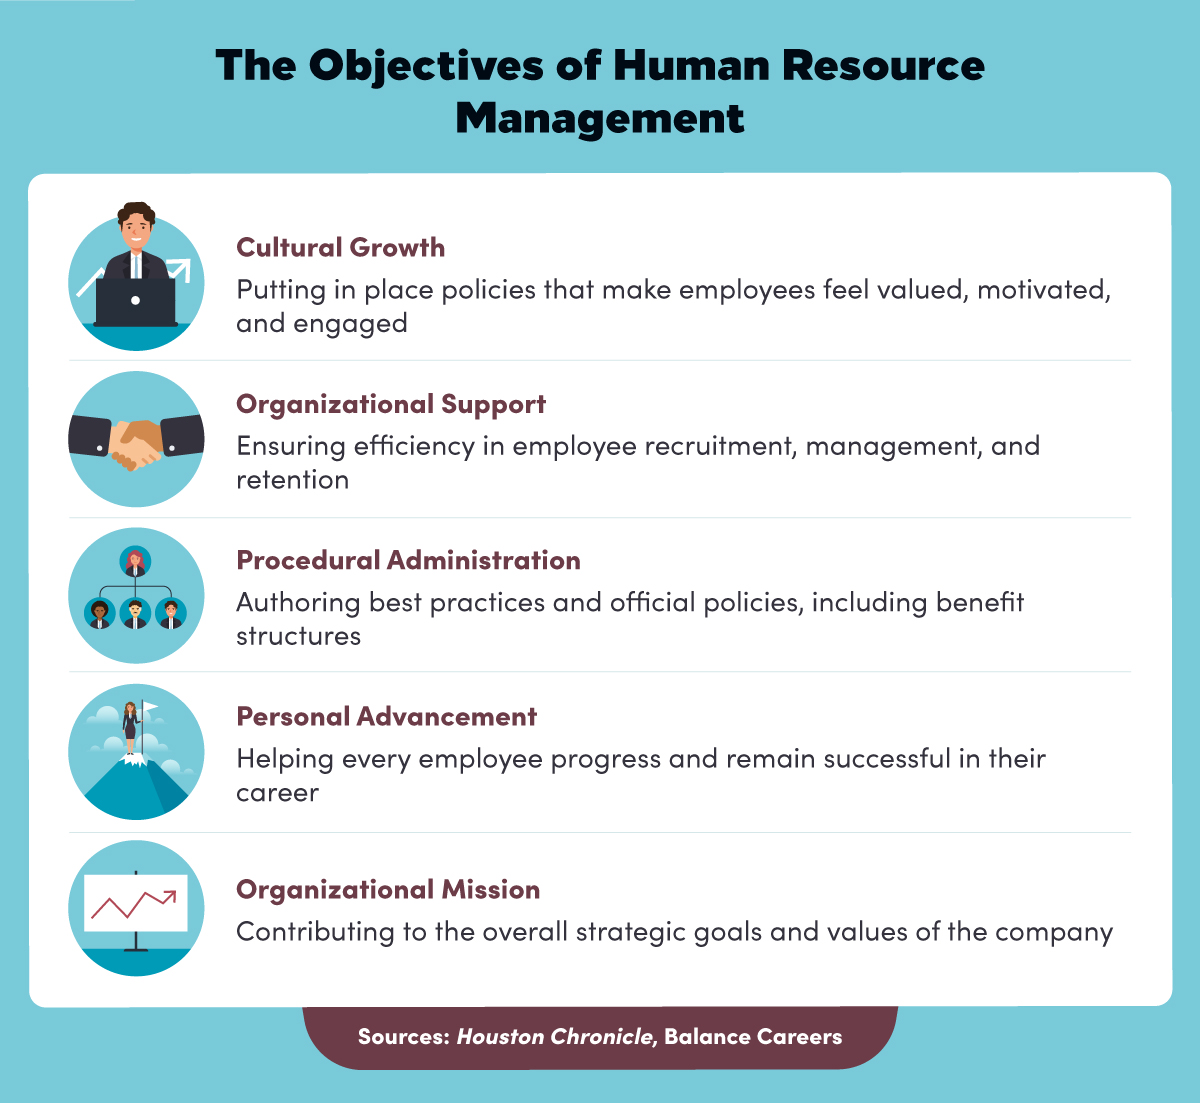 the objectives of human resource management.